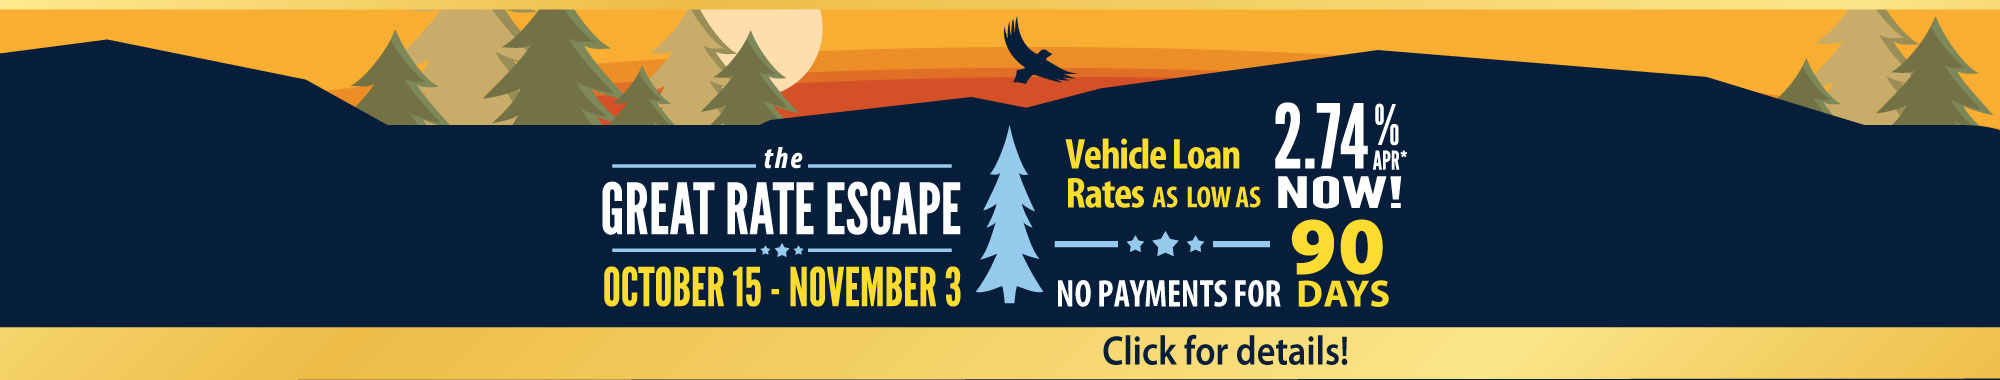 UnitedOne Great Rate Escape Vehicle Loan Sale - Click here!